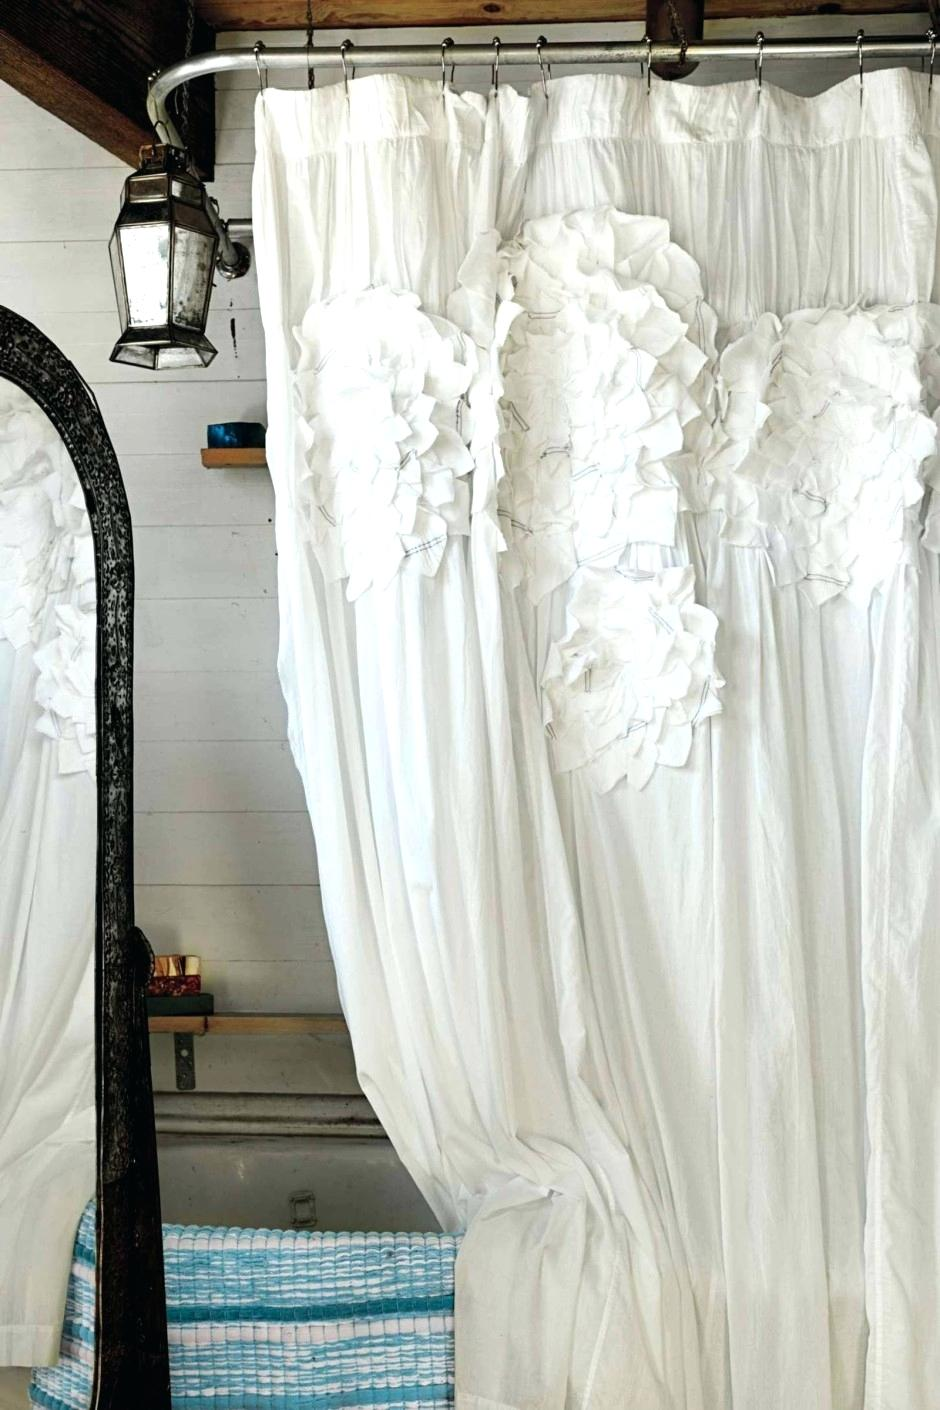 Blackout Curtains for Girls Room | Jcpenney Bedroom Curtains | Ruffle Blackout Curtains